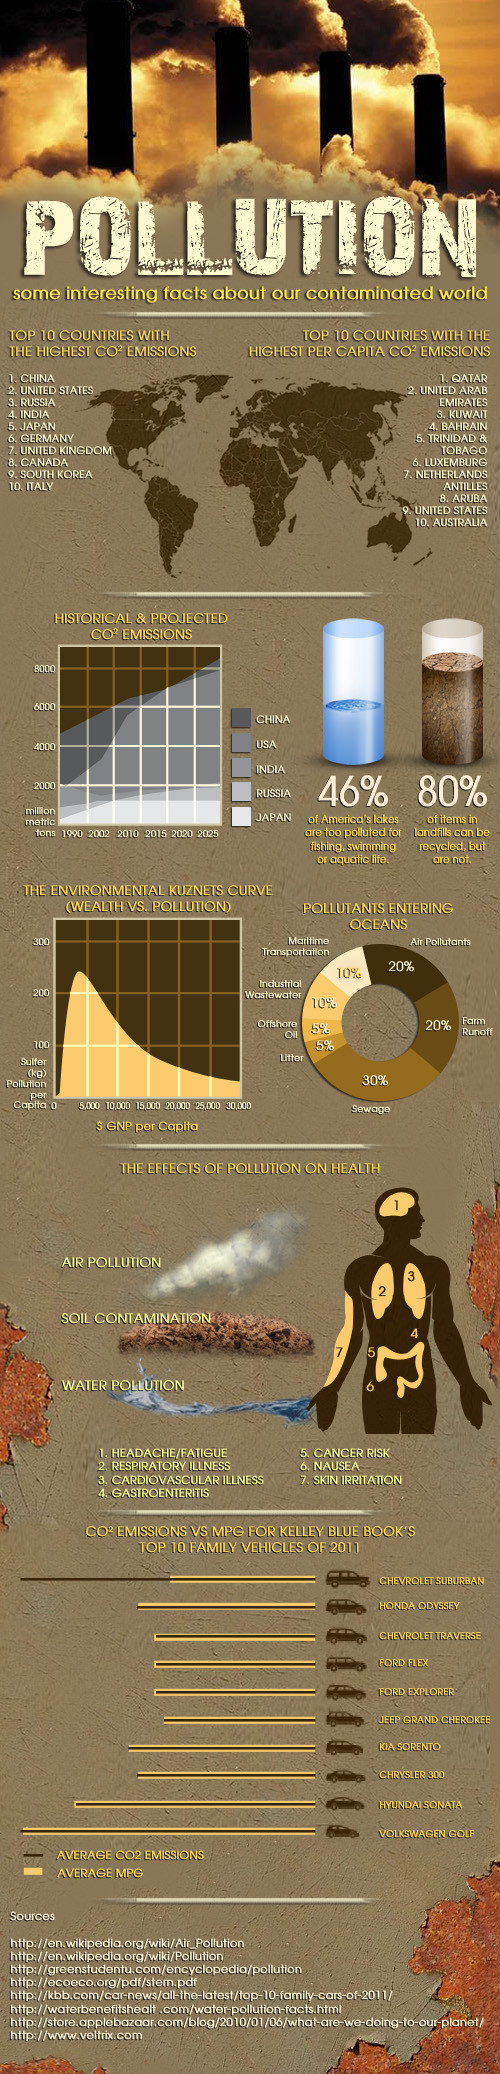 Pollution: some interesting facts about our contaminated world, an infographic.